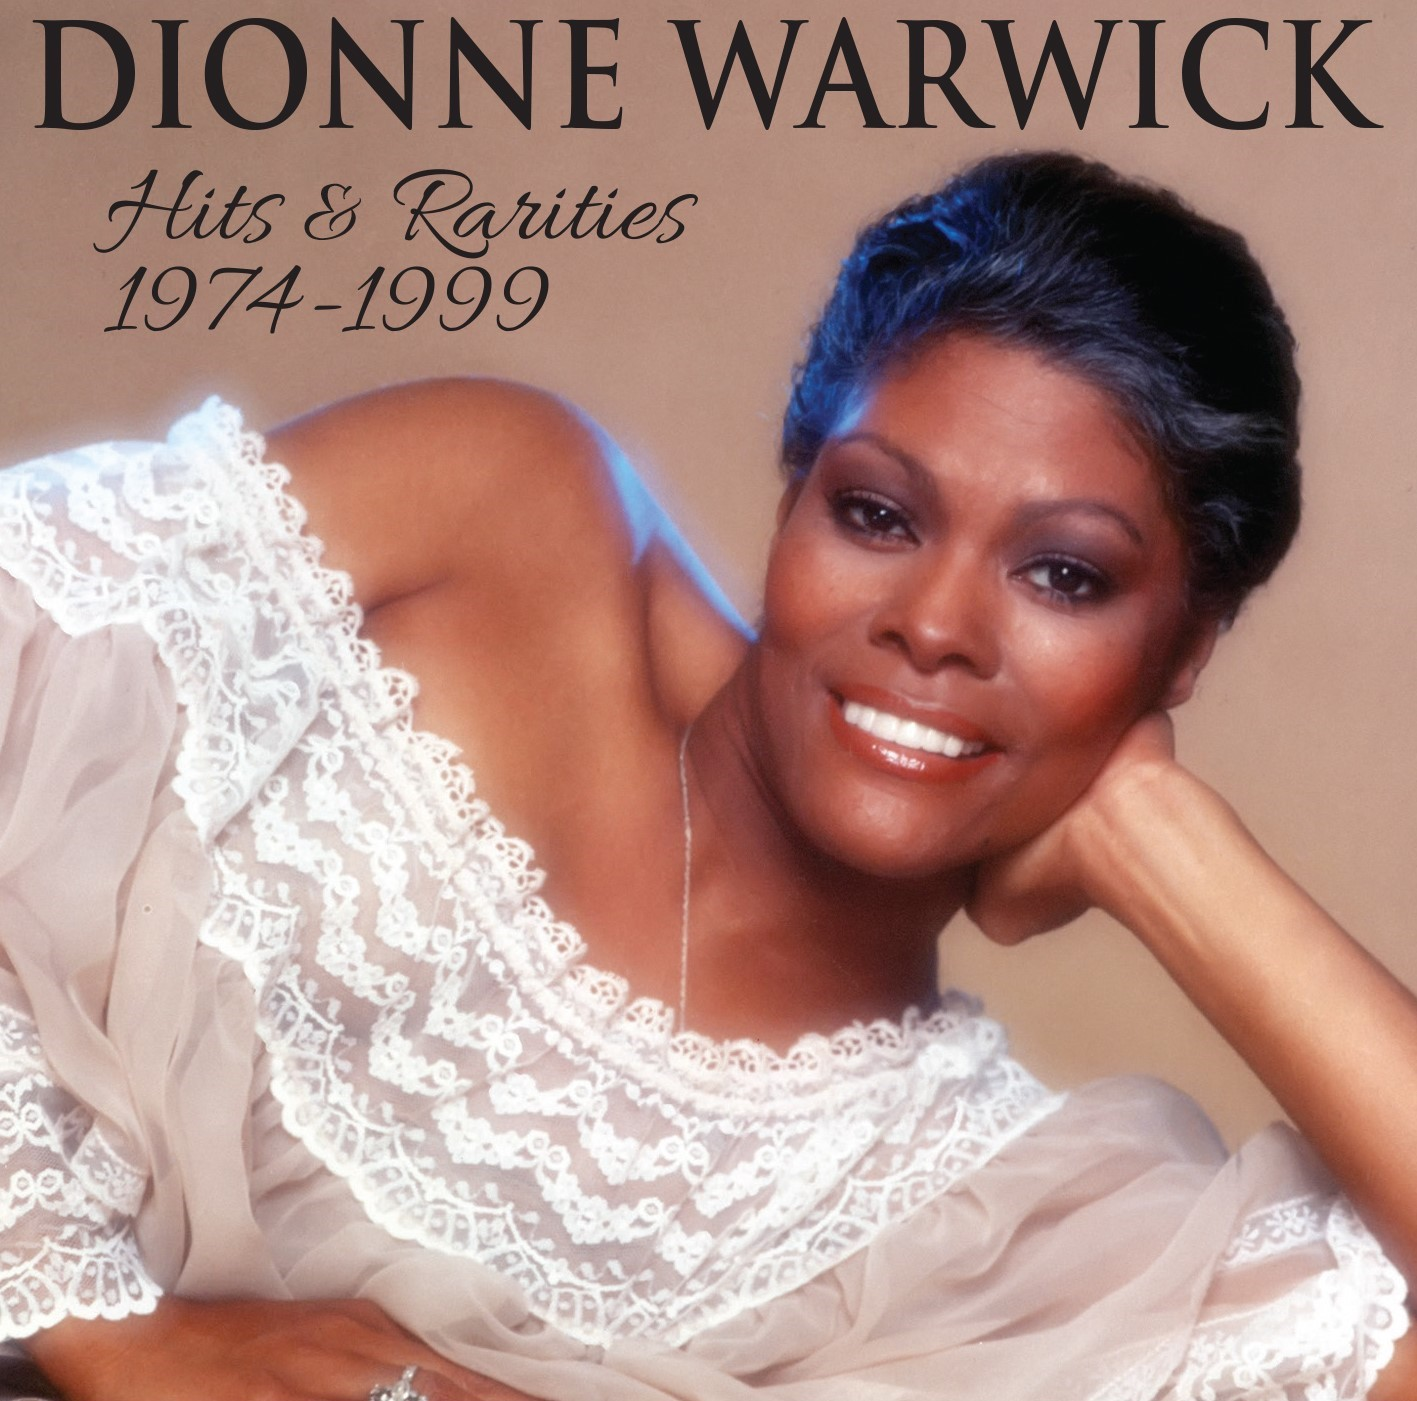 Barry Manilow will make a cameo on the PBS Special for Dionne Warwick: Then Came You – Airing August 18th 2018